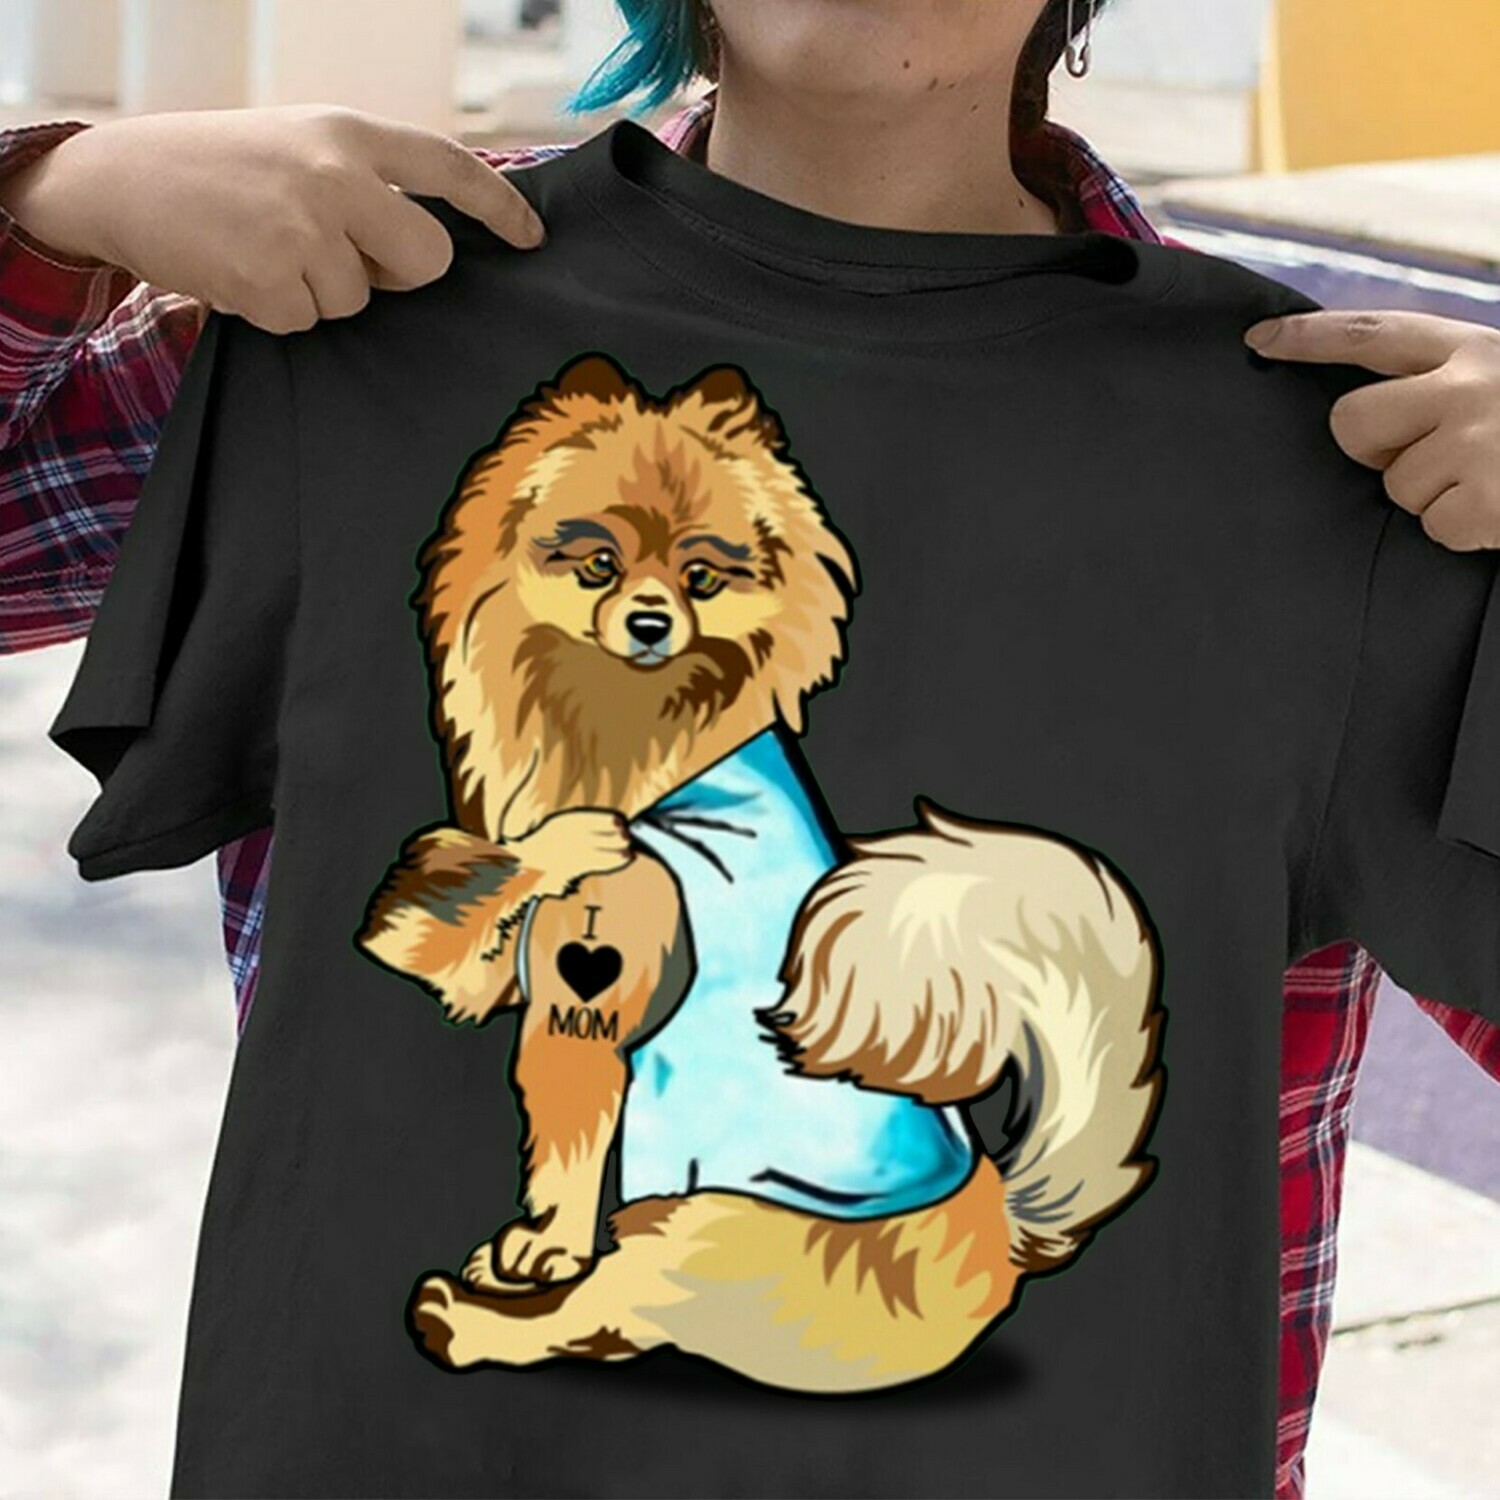 The pomeranian Breed Dog Black Tattoos I Love Mom sitting Thick Thighs  T-Shirt Hoodie Sweatshirt Sweater Tee Kids Youth Gifts Jolly Family Gifts